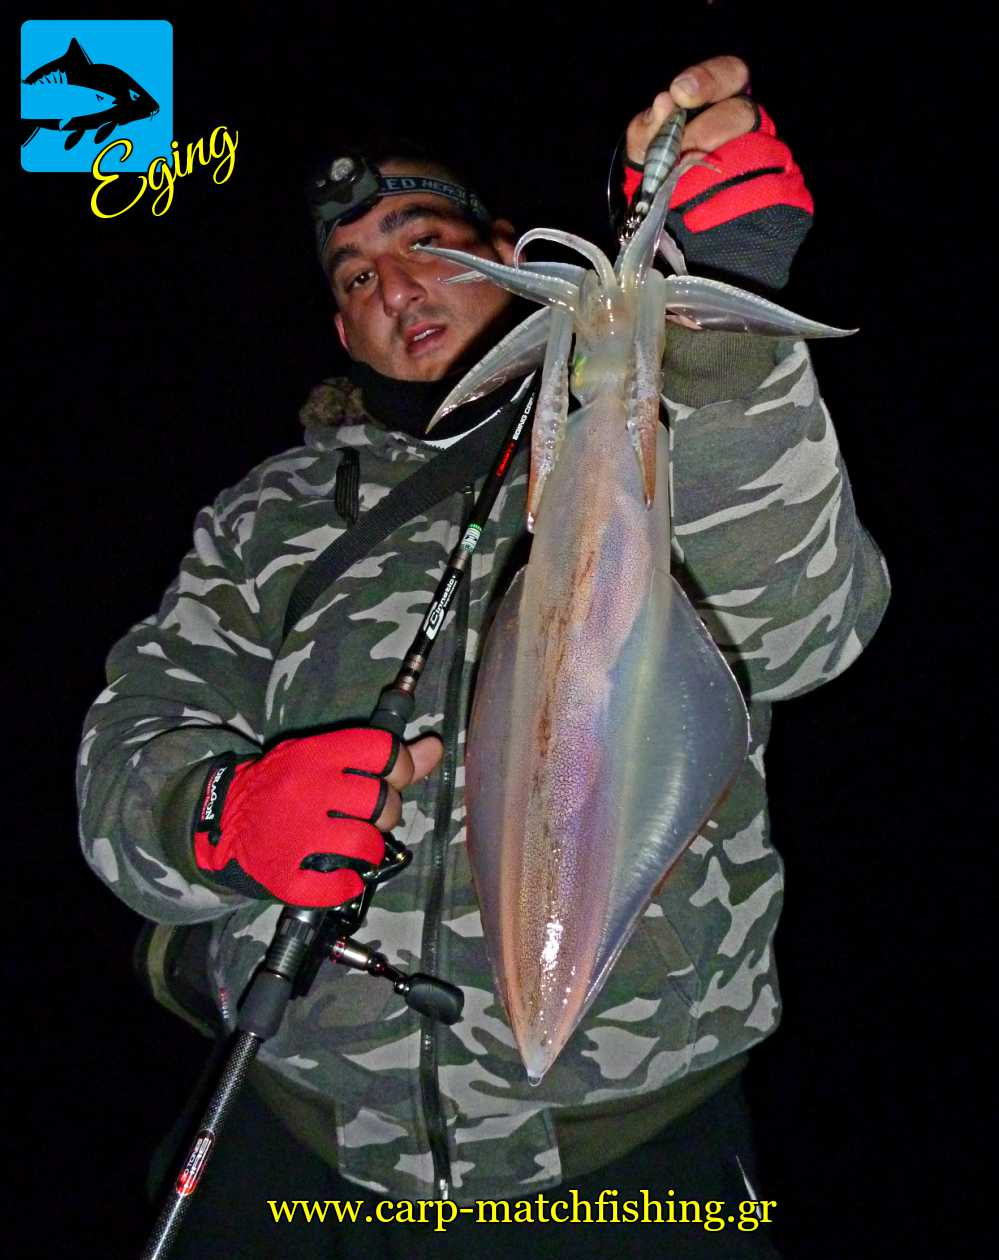 eging big squid attractors terabite panos carpmatchfishing